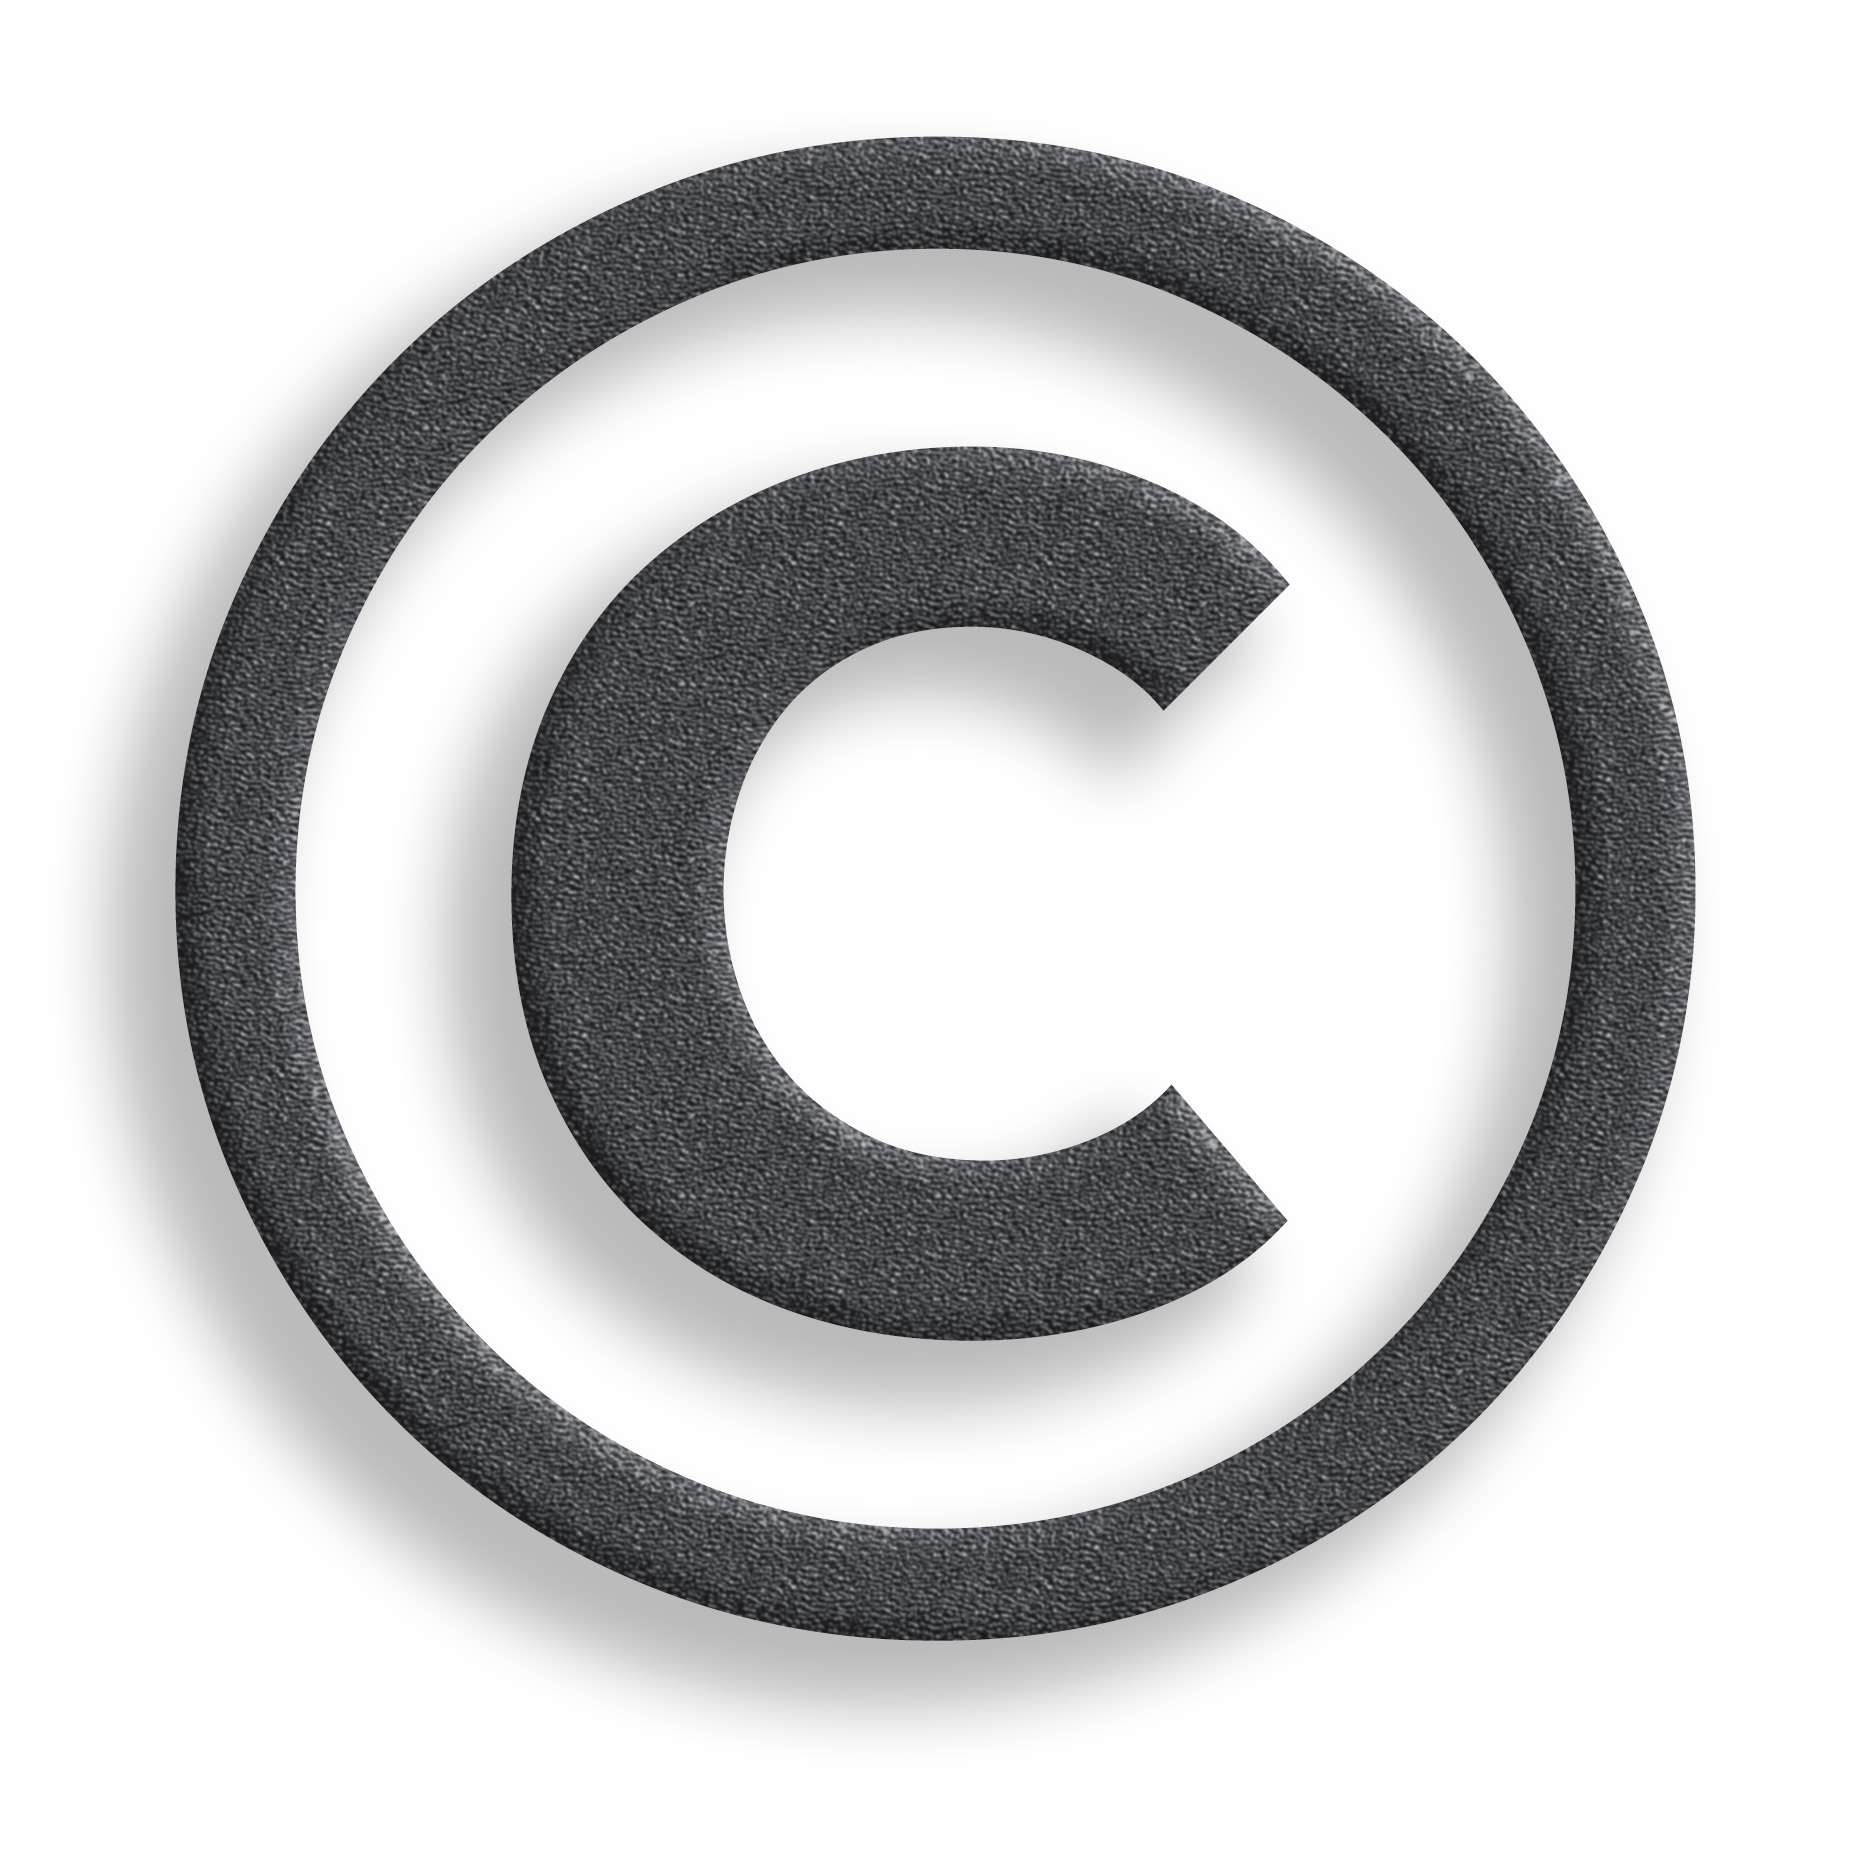 Copyright Symbol Textured Photo This That